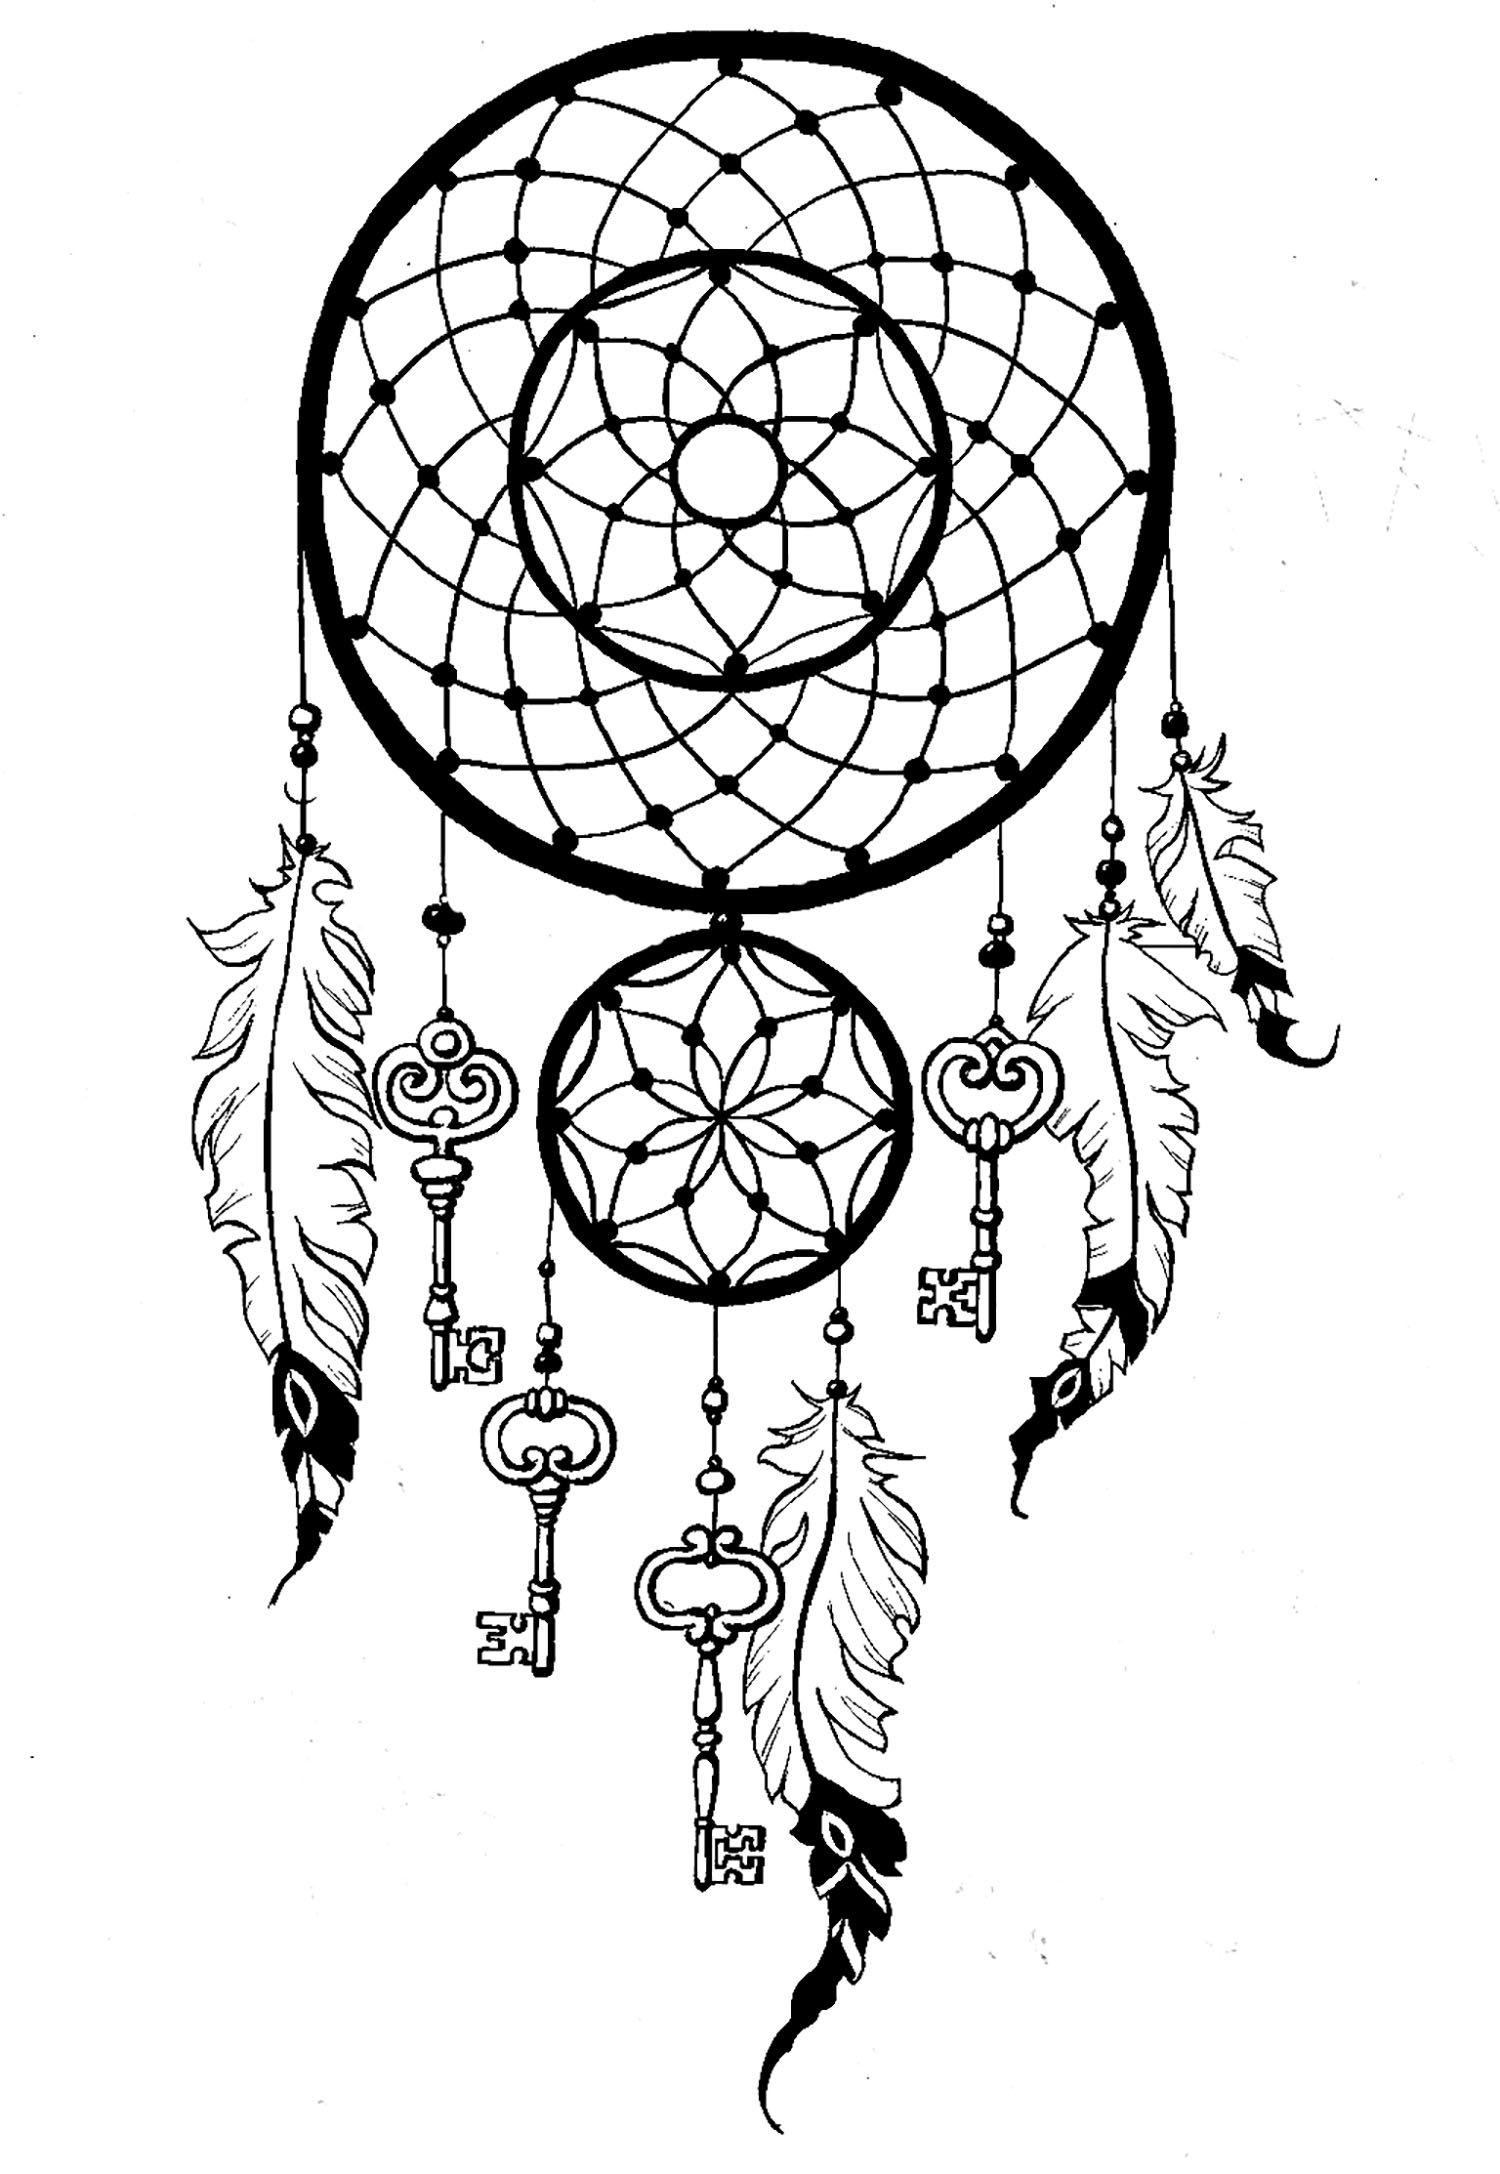 Dreamcatcher Keys Dreamcatchers Coloring Pages For Adults Just